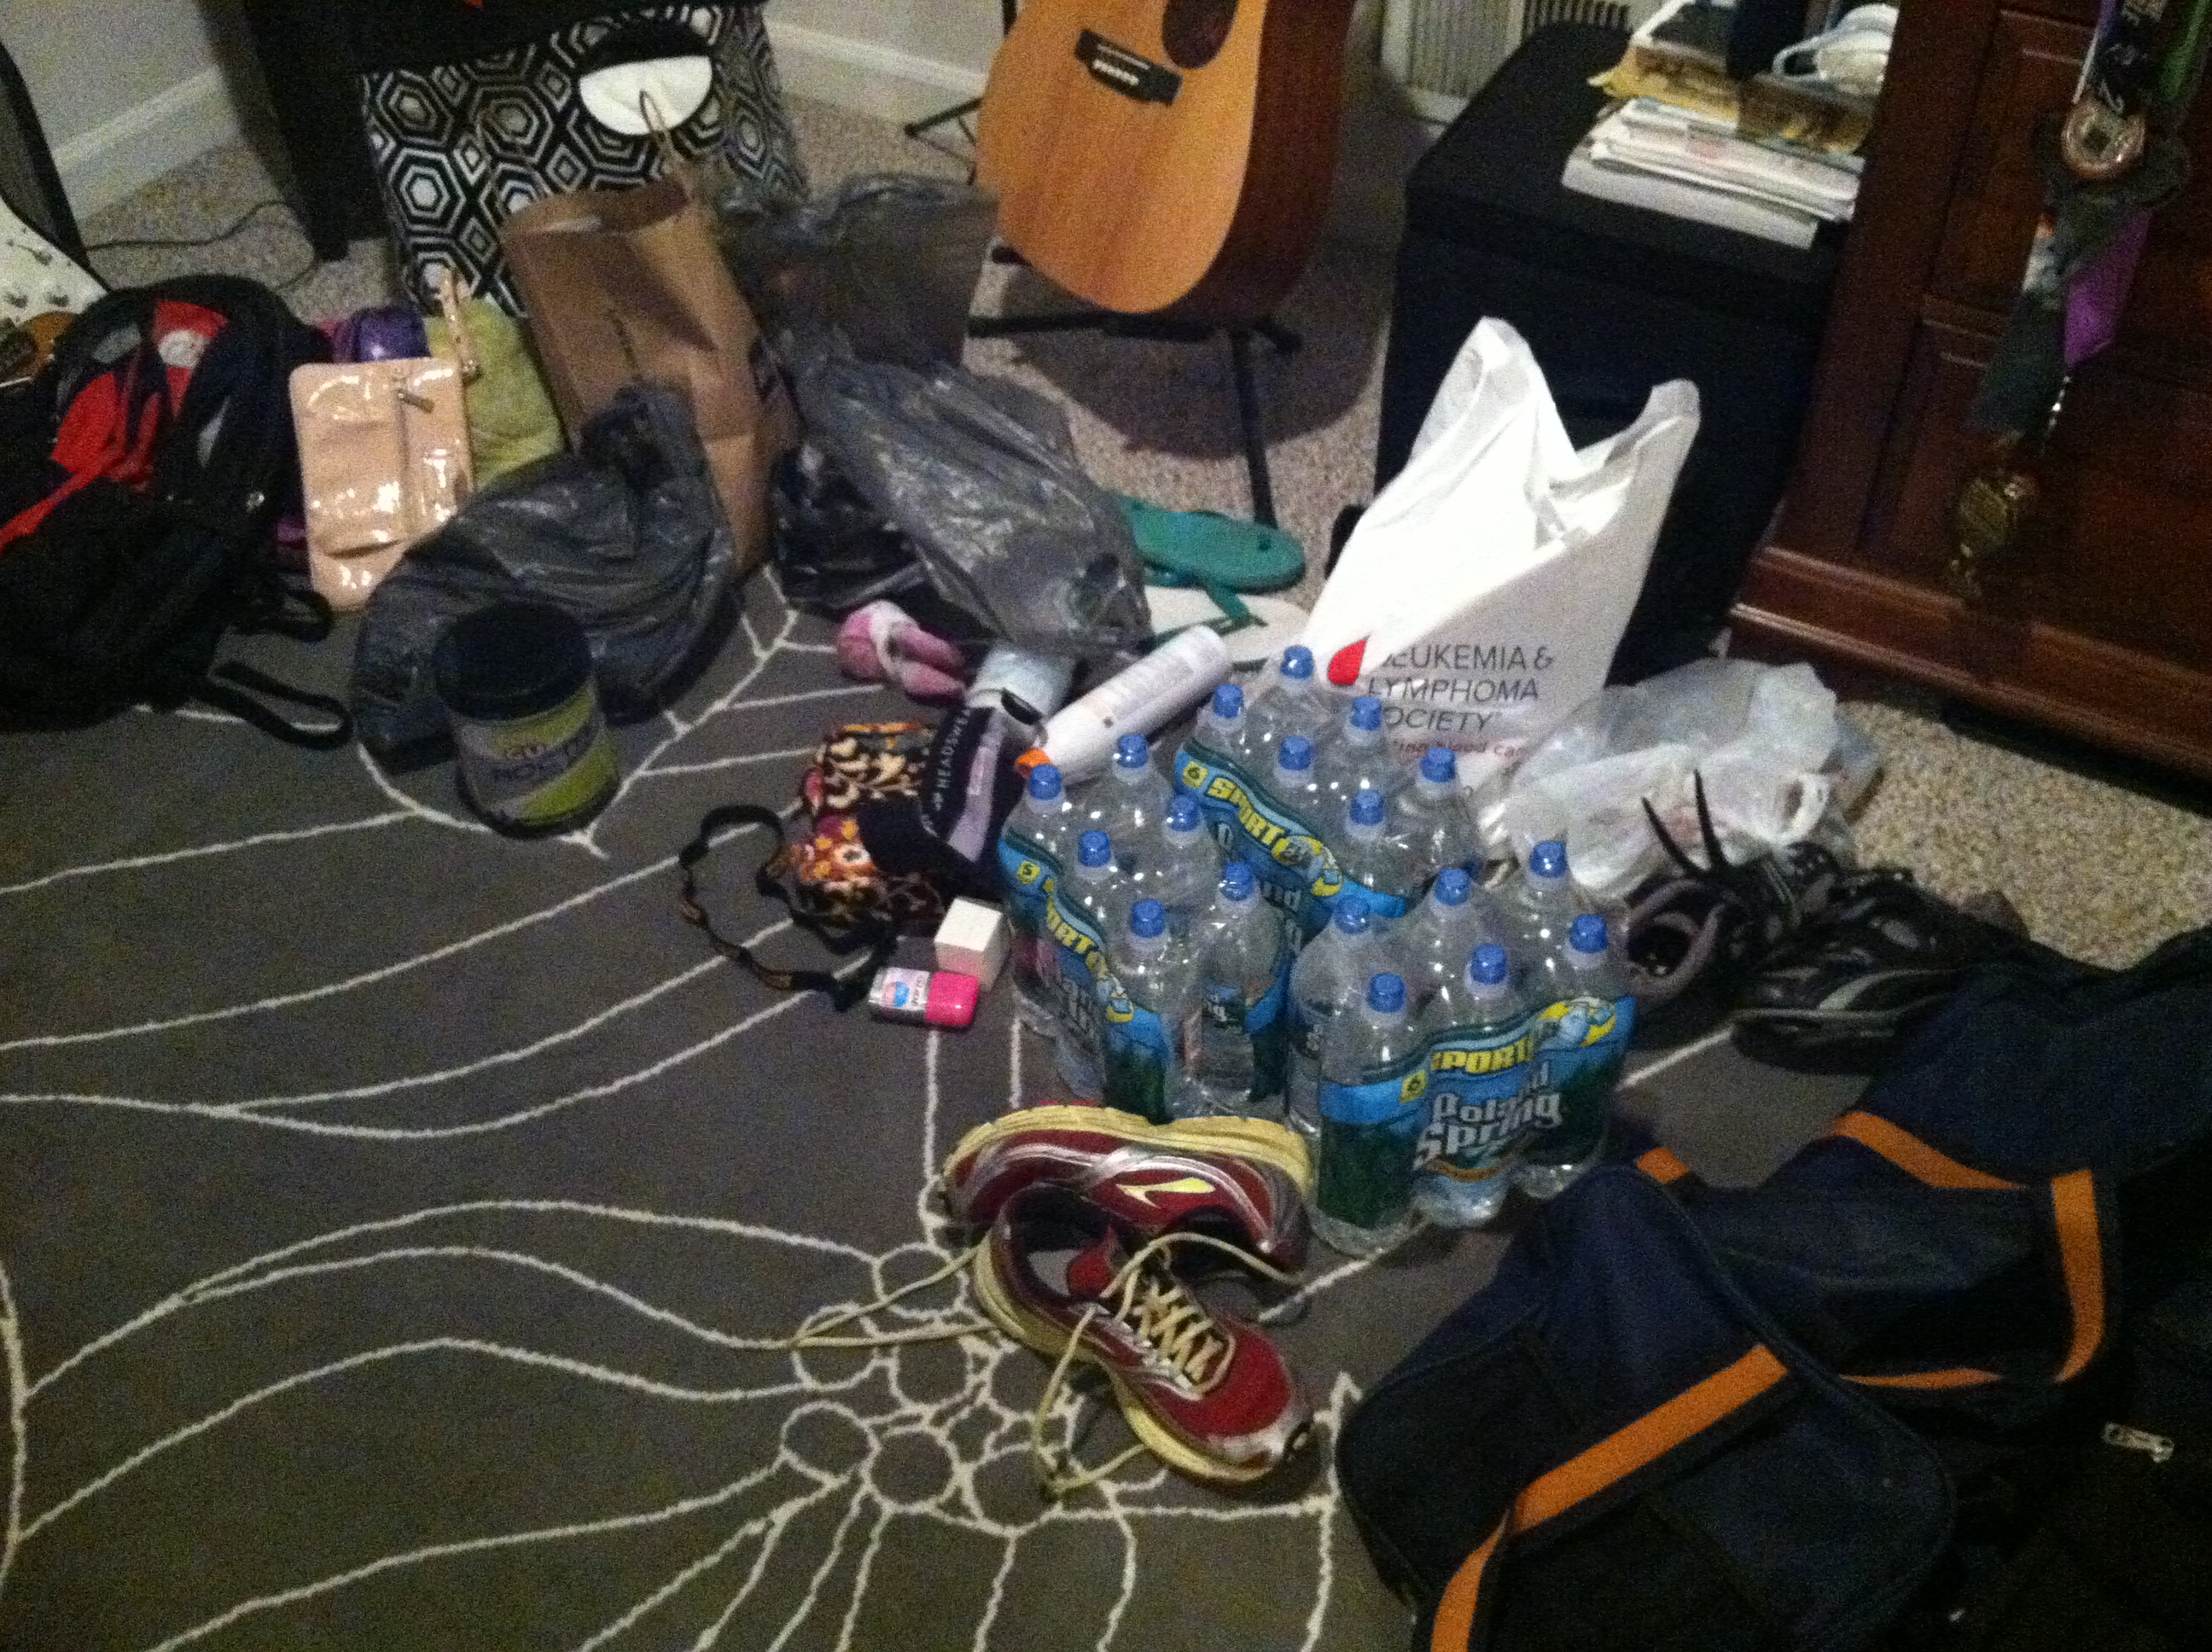 Unfortunately my room still looks like this. Gotta run!